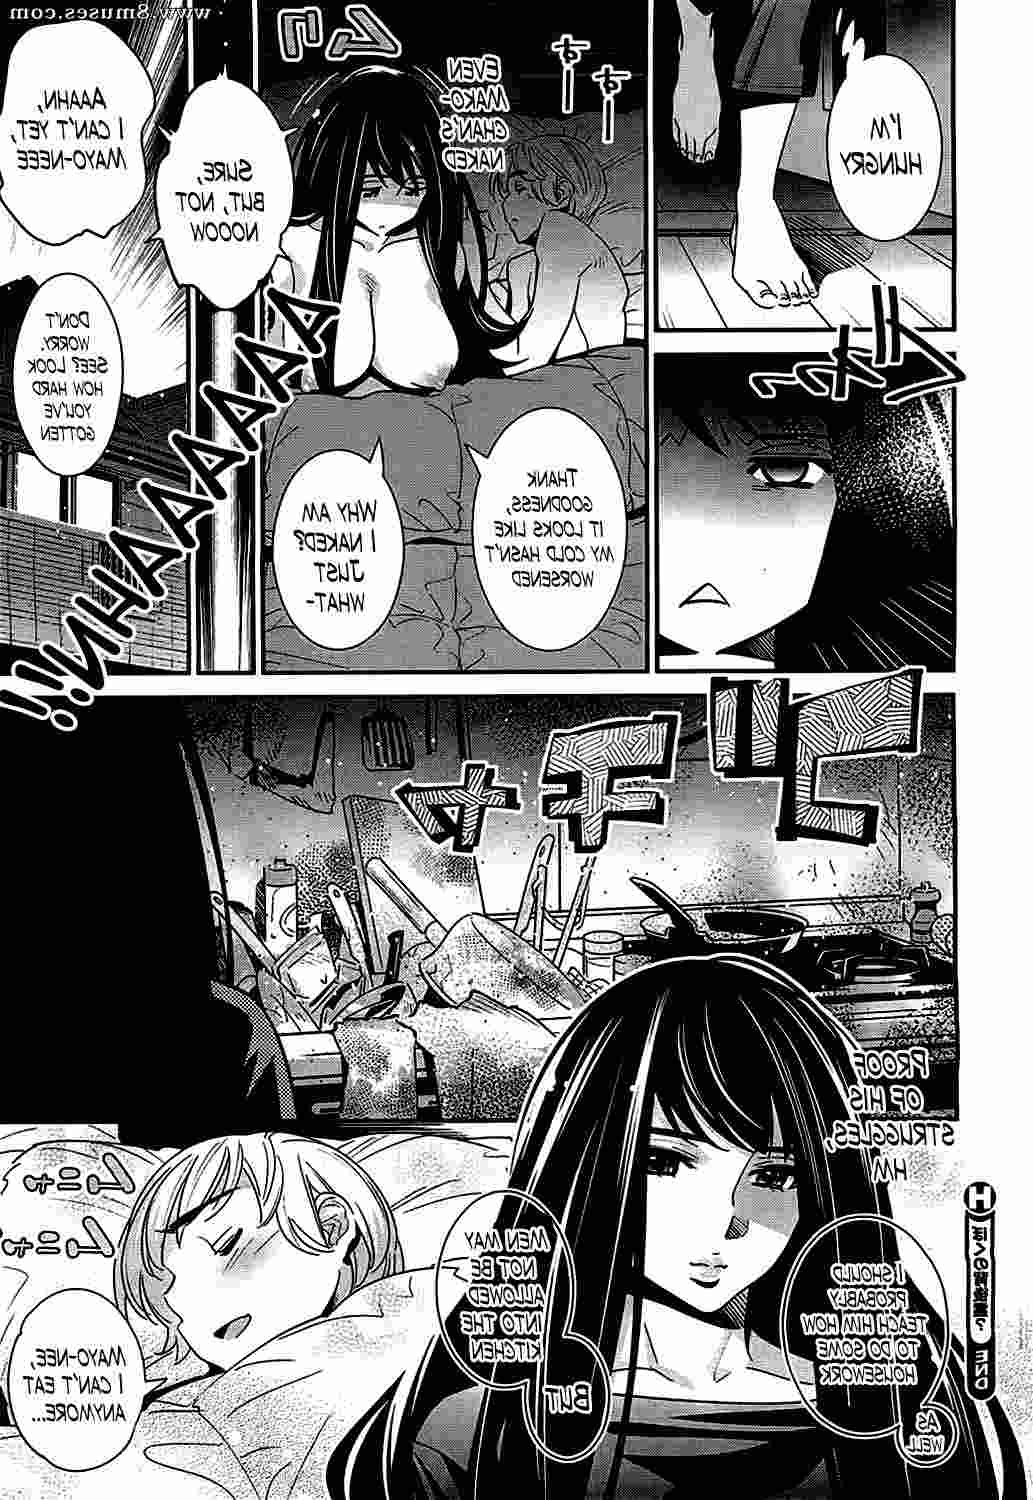 Hentai-and-Manga-English/Katsura-Yoshihiro/The-Ghost-Behind-My-Back The_Ghost_Behind_My_Back__8muses_-_Sex_and_Porn_Comics_48.jpg